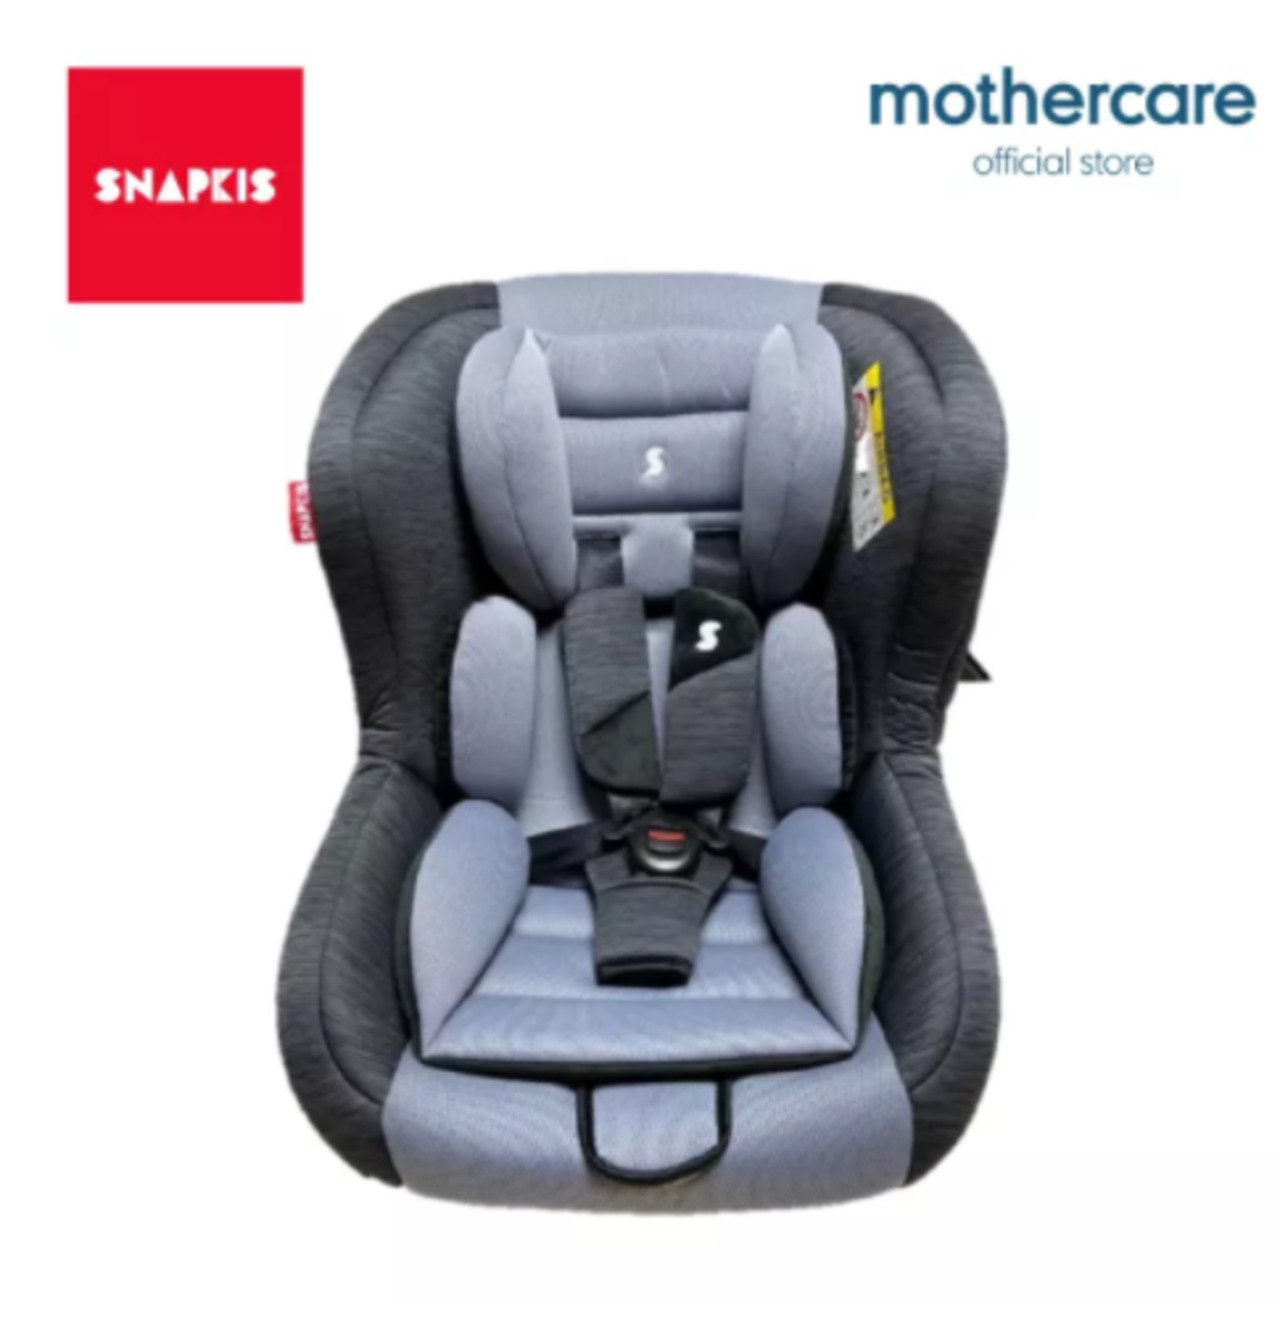 Snapkis Transformers 0-4 Car Seat 22% off